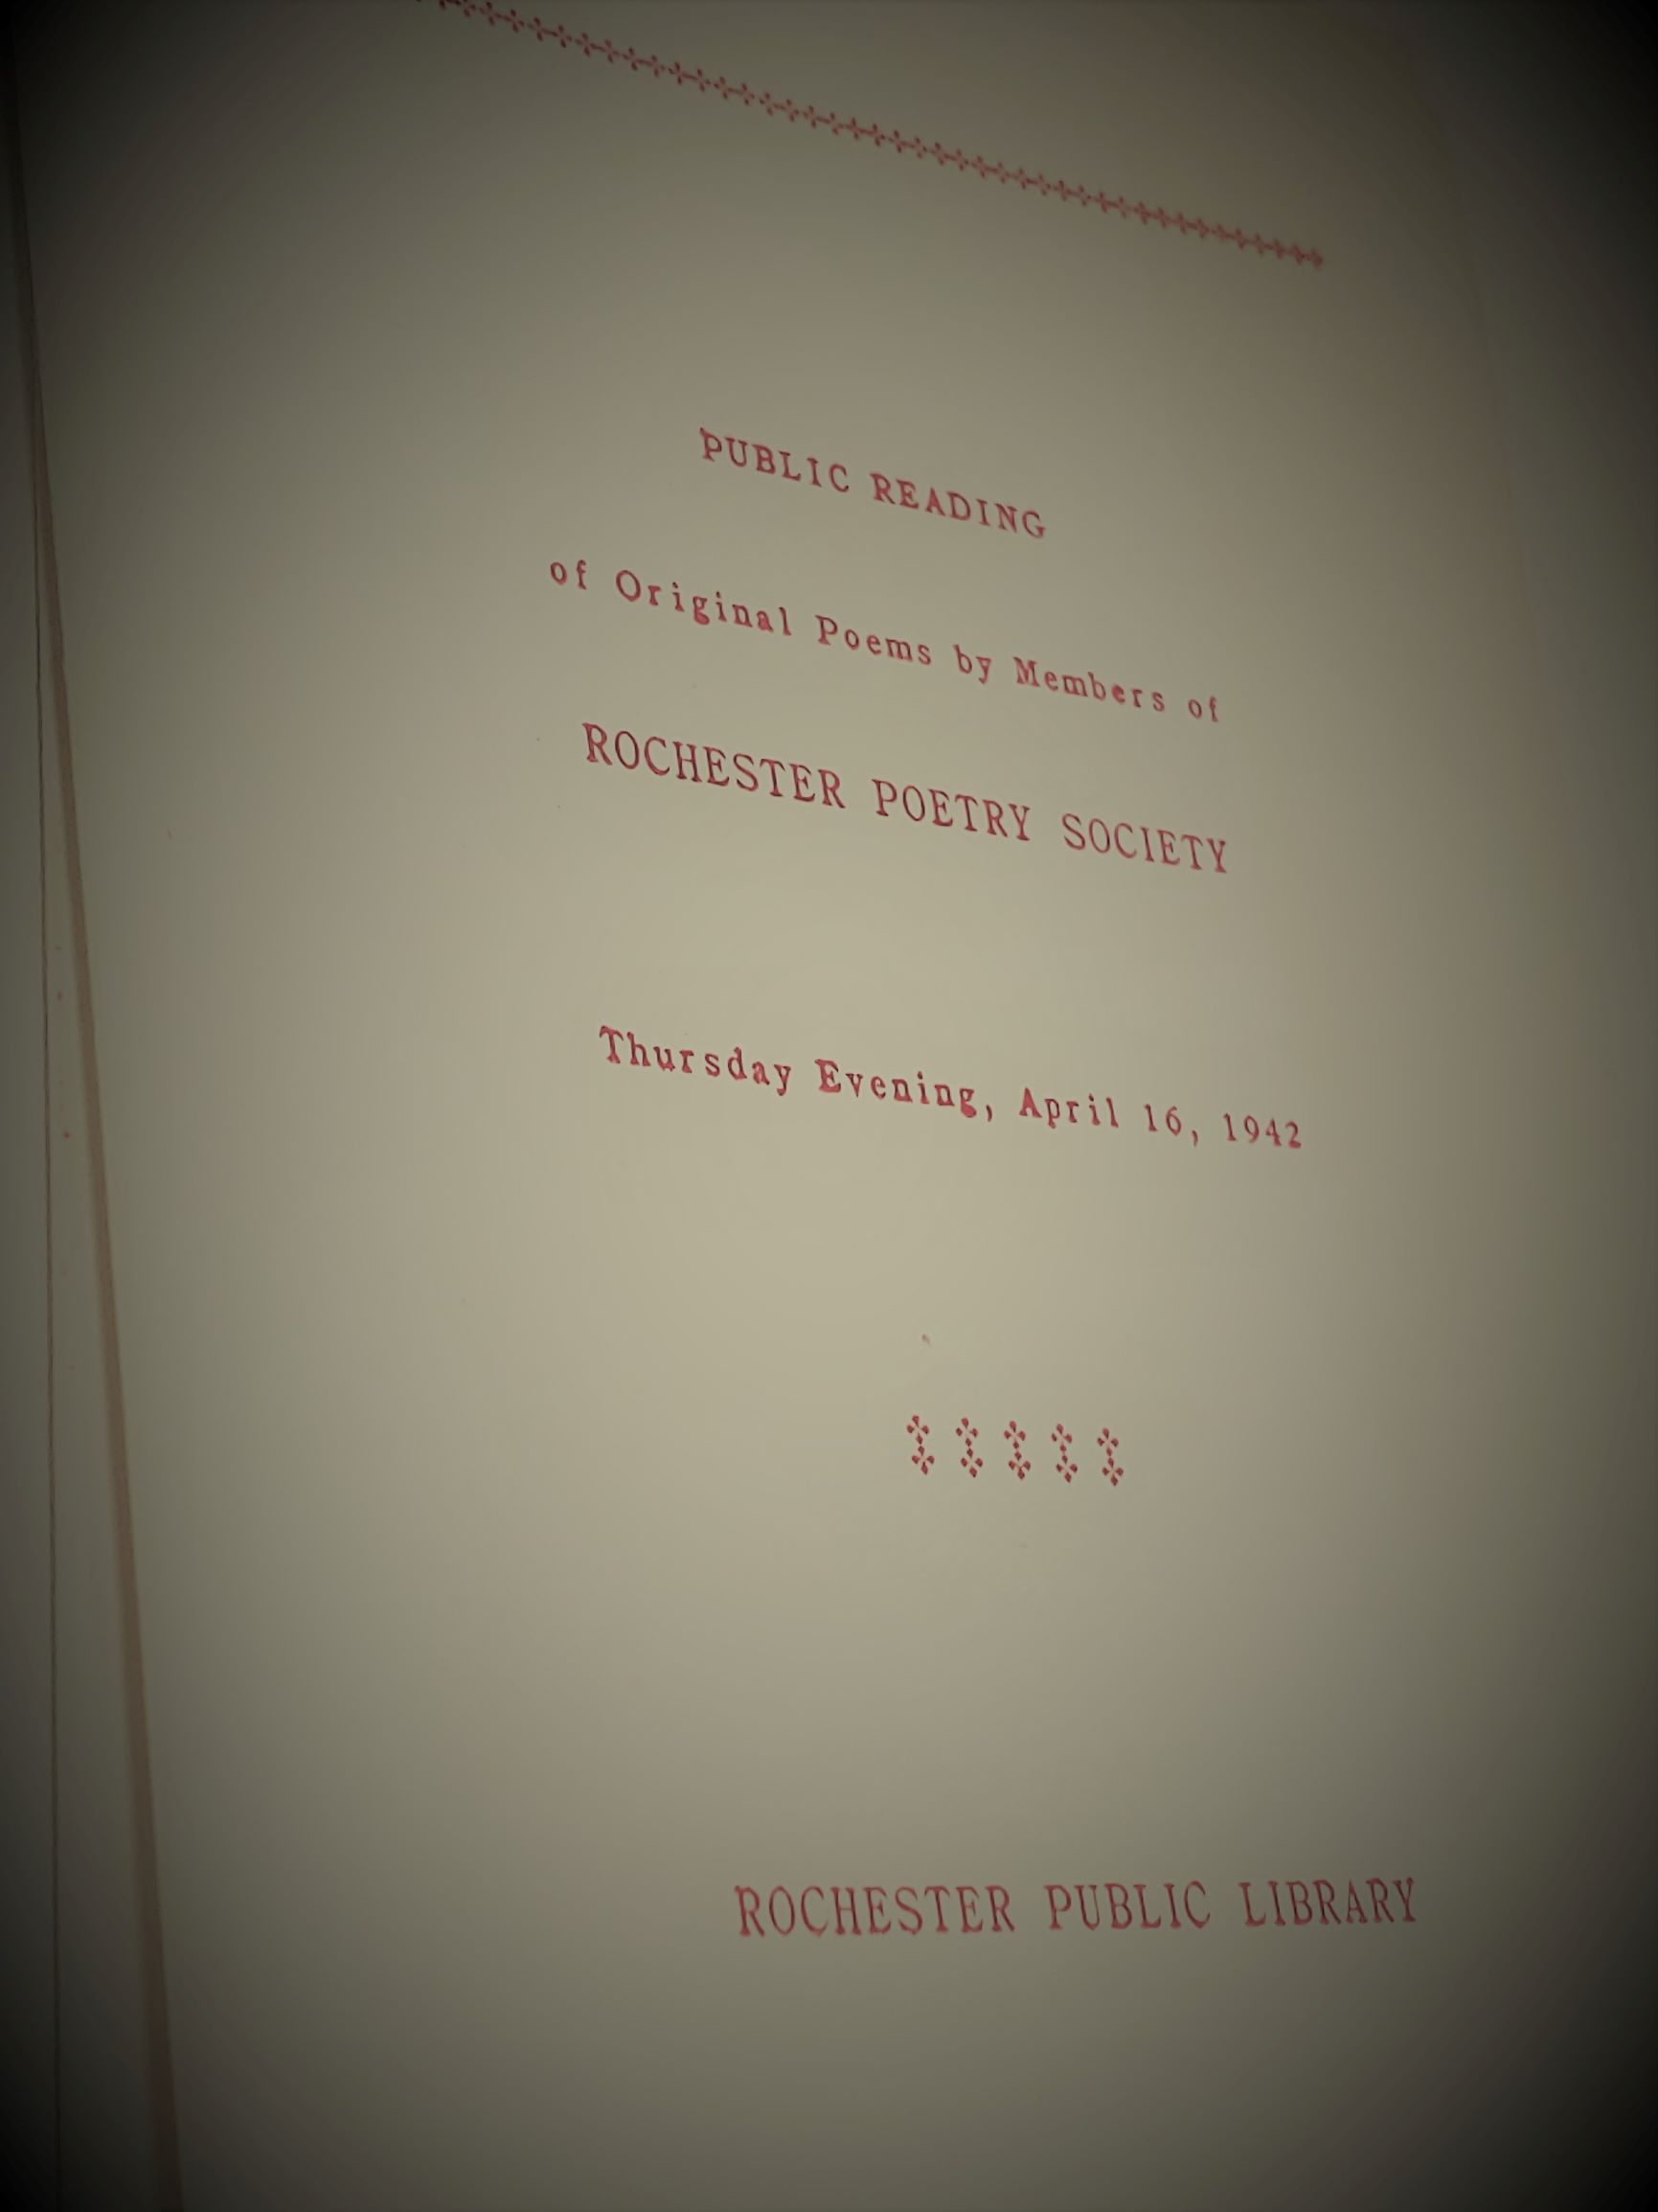 Public Reading of Original Poems by Members of the Rochester Poet Society, Thursday Evening, April 16, 1942, Rochester Public Library